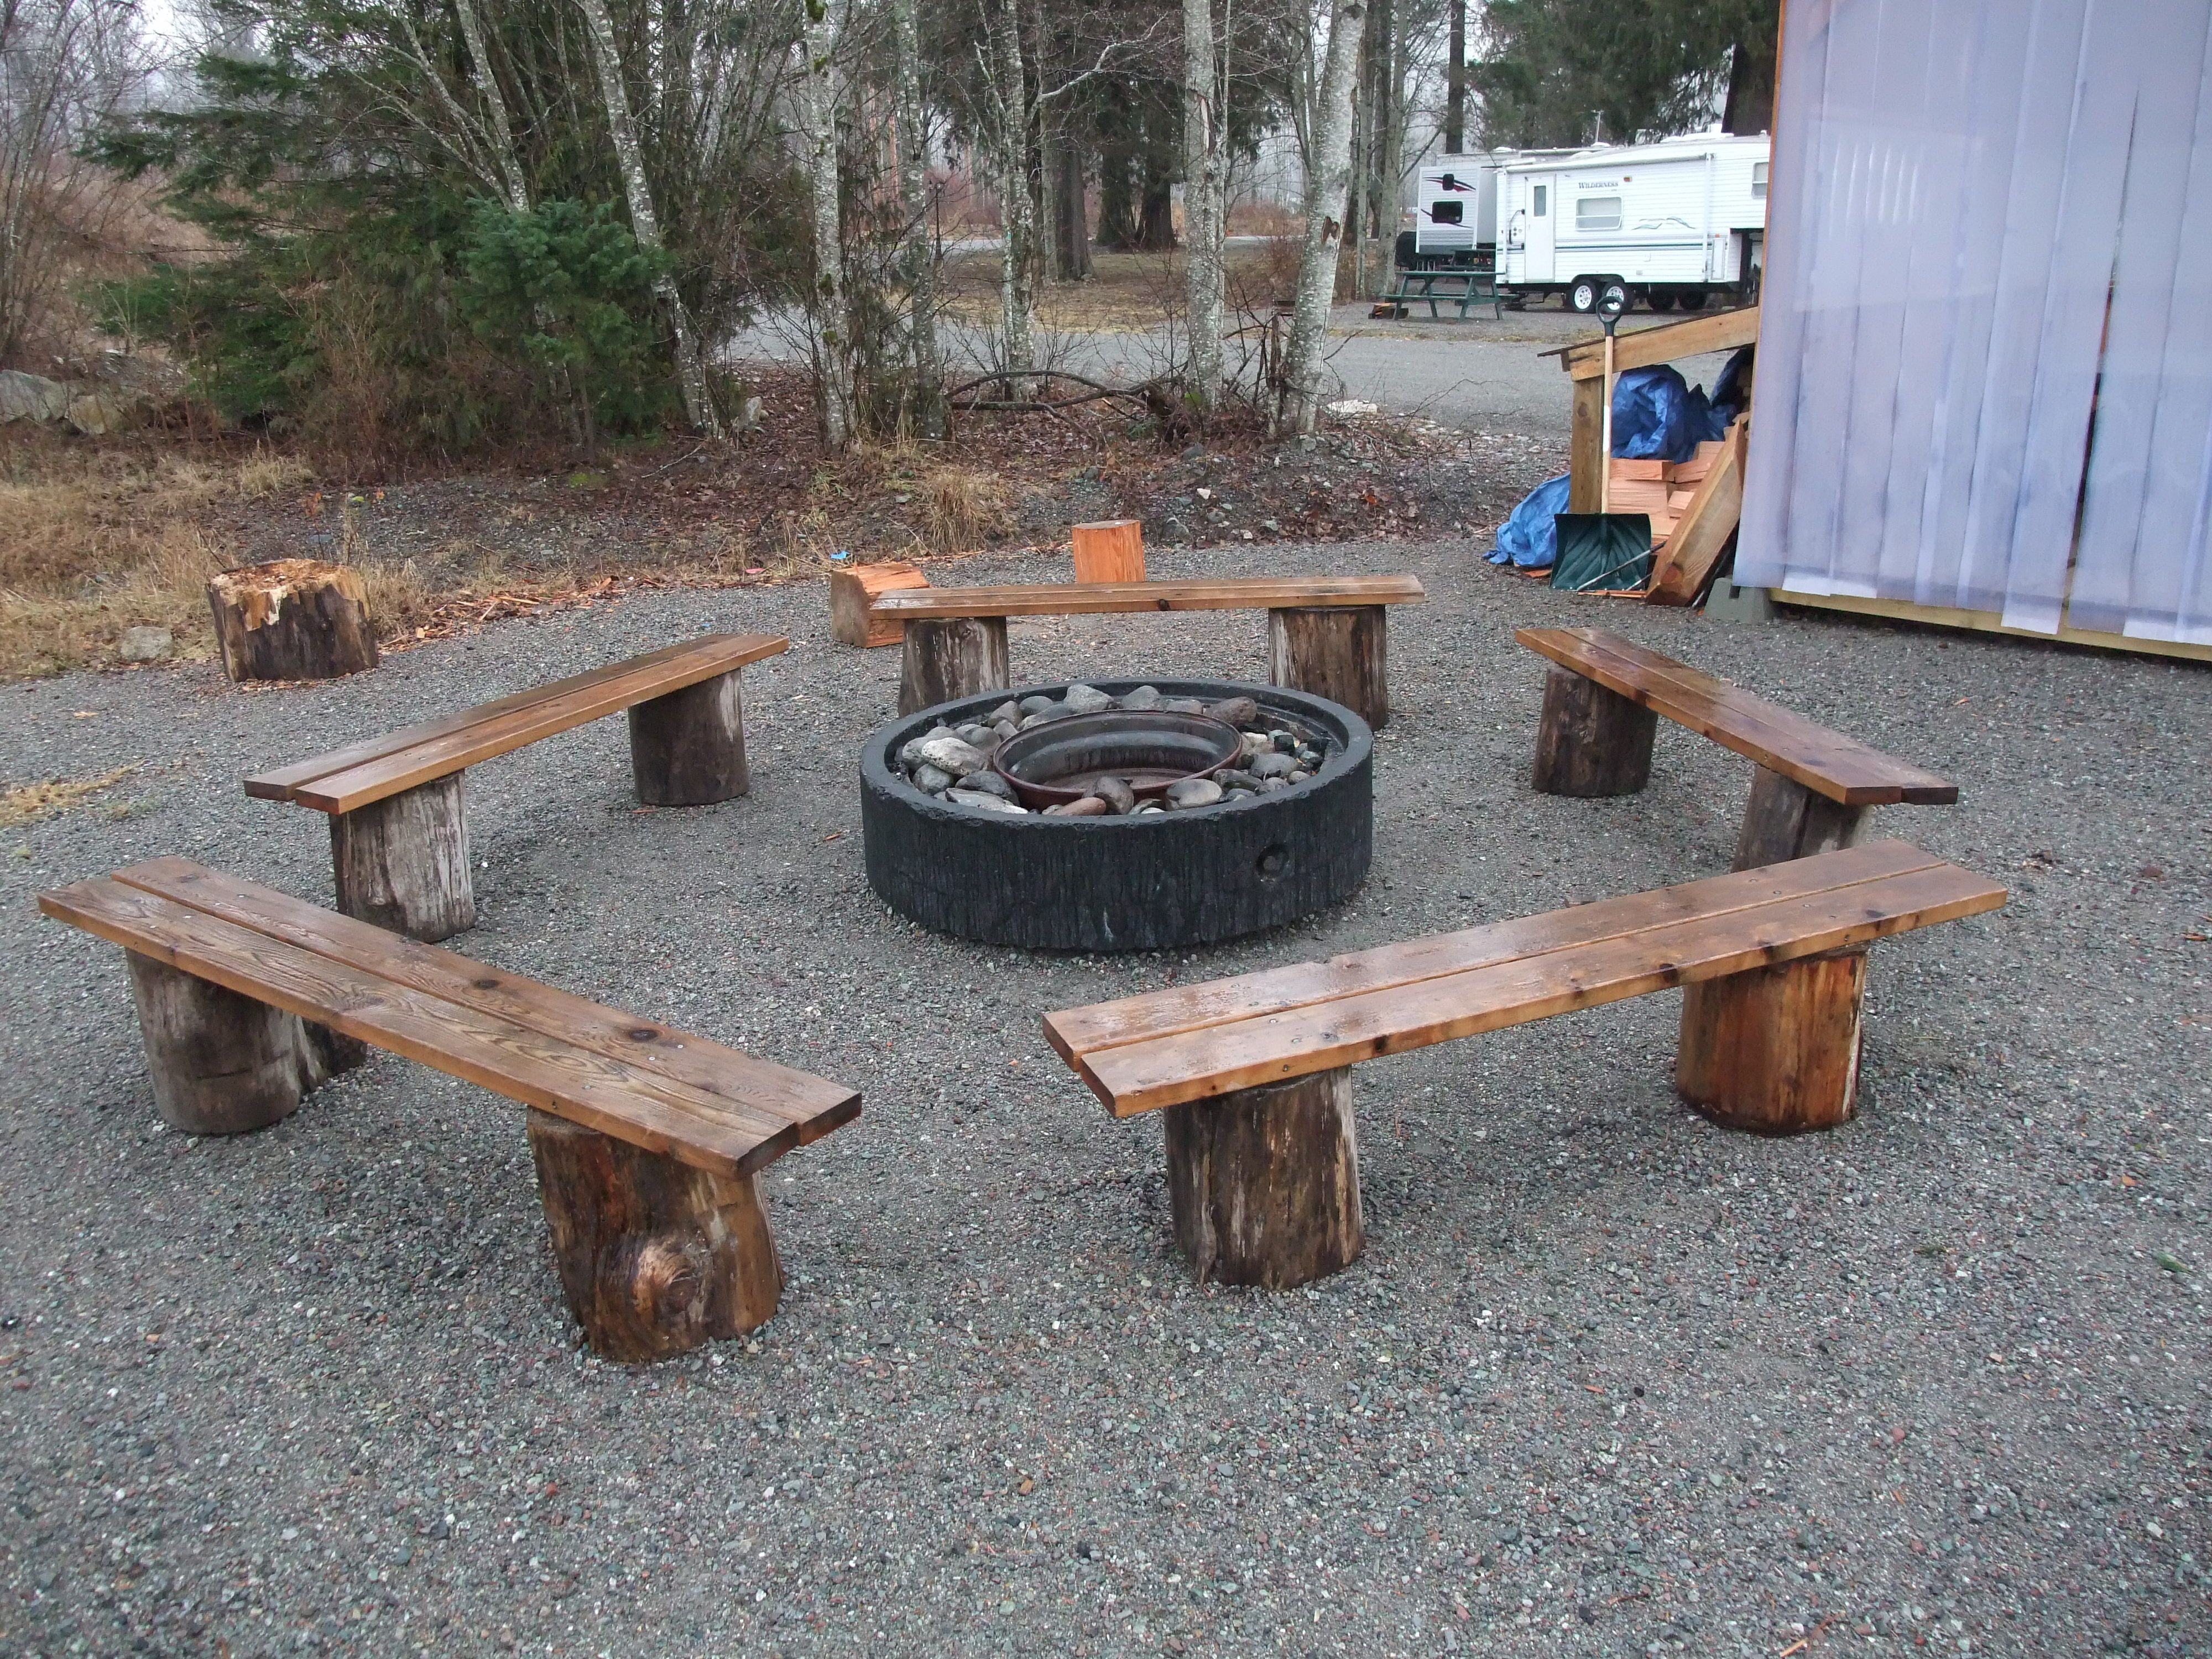 I Like The Fire Pit Benches My Firepit Is Made Of Stones